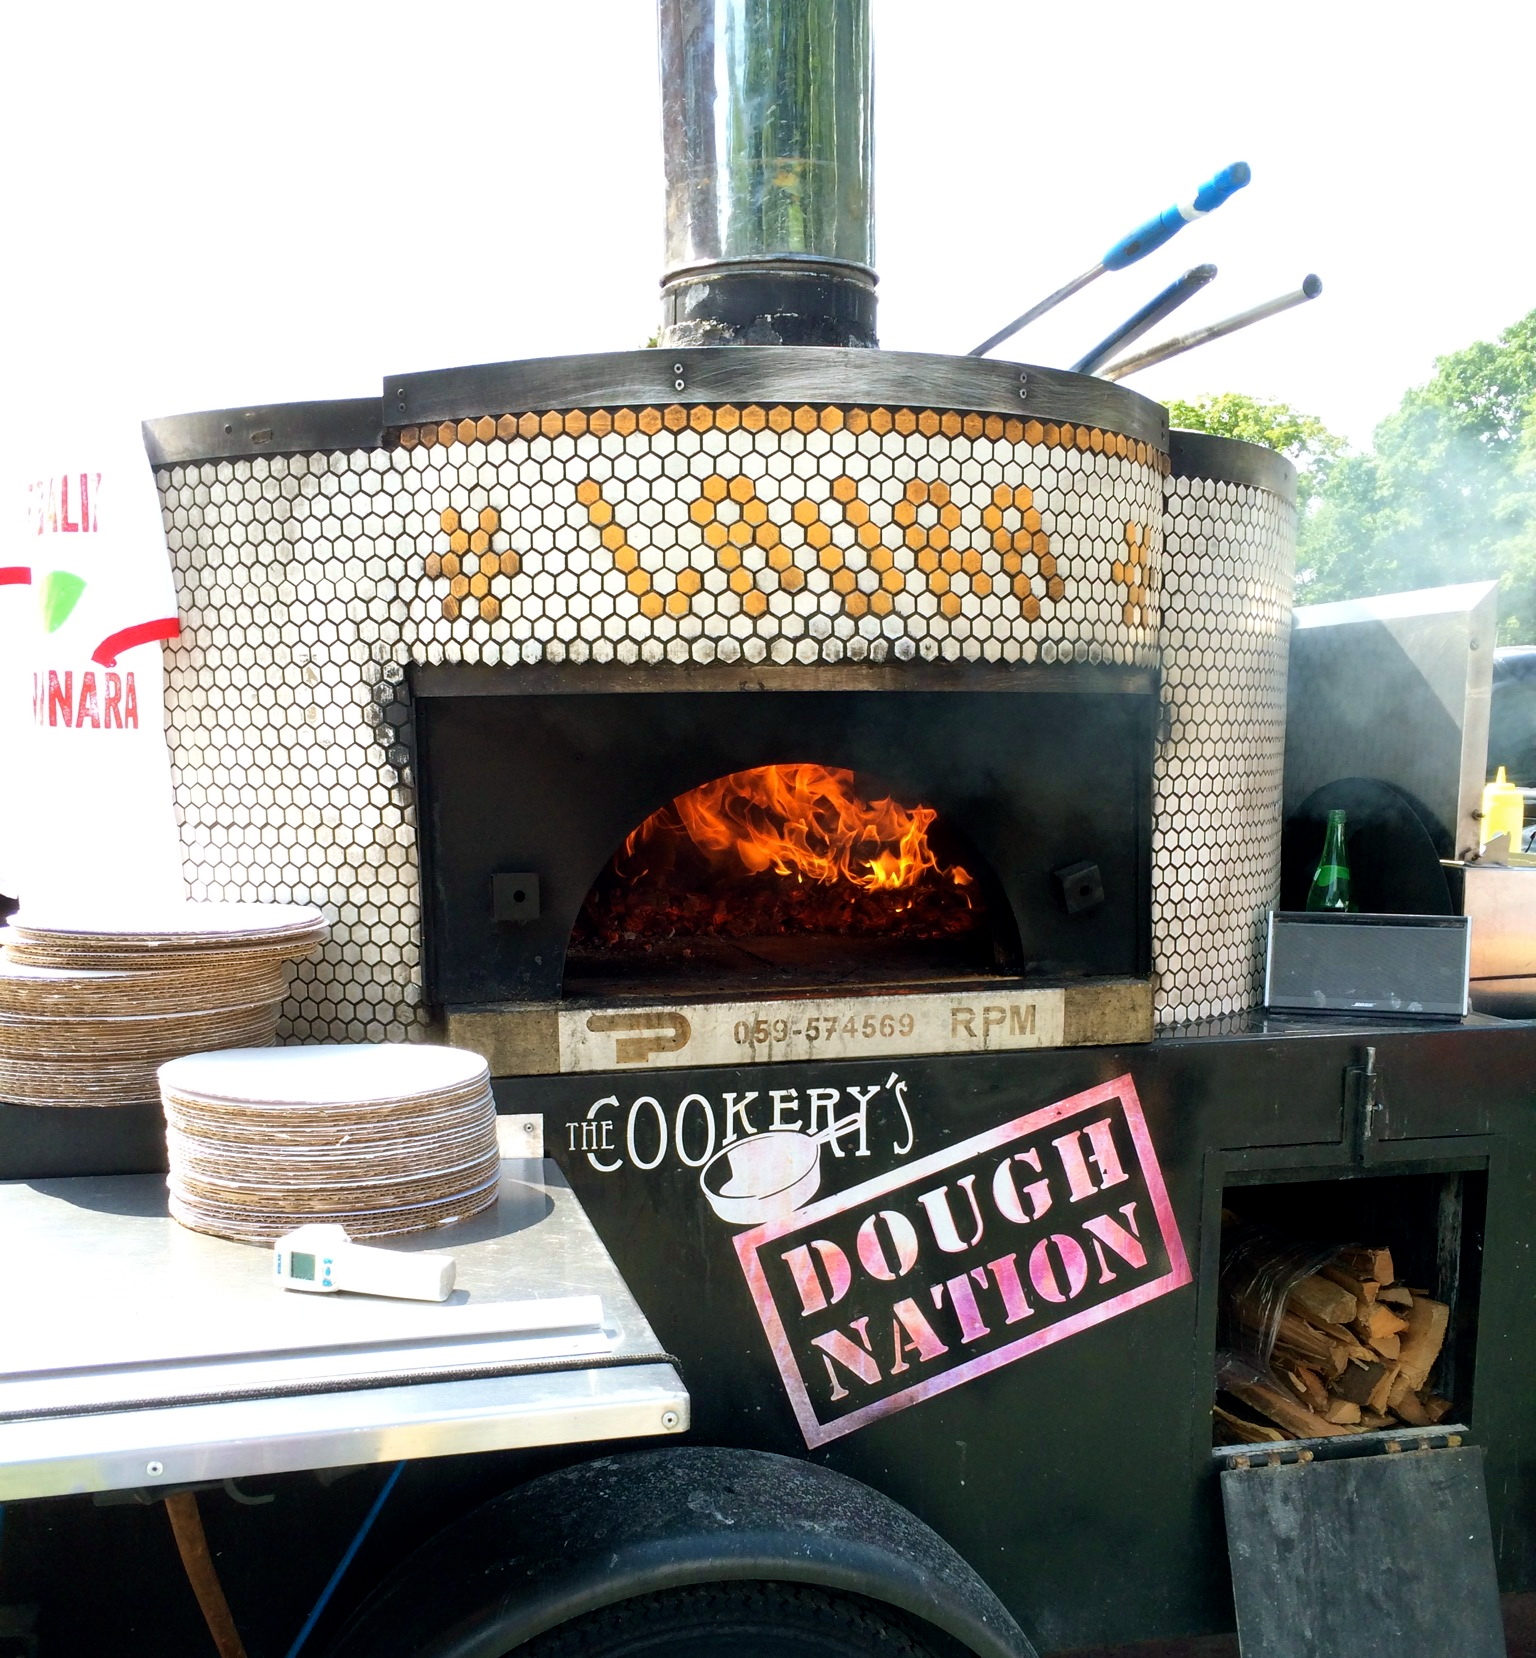 doughnation mobile wood-fire pizza oven